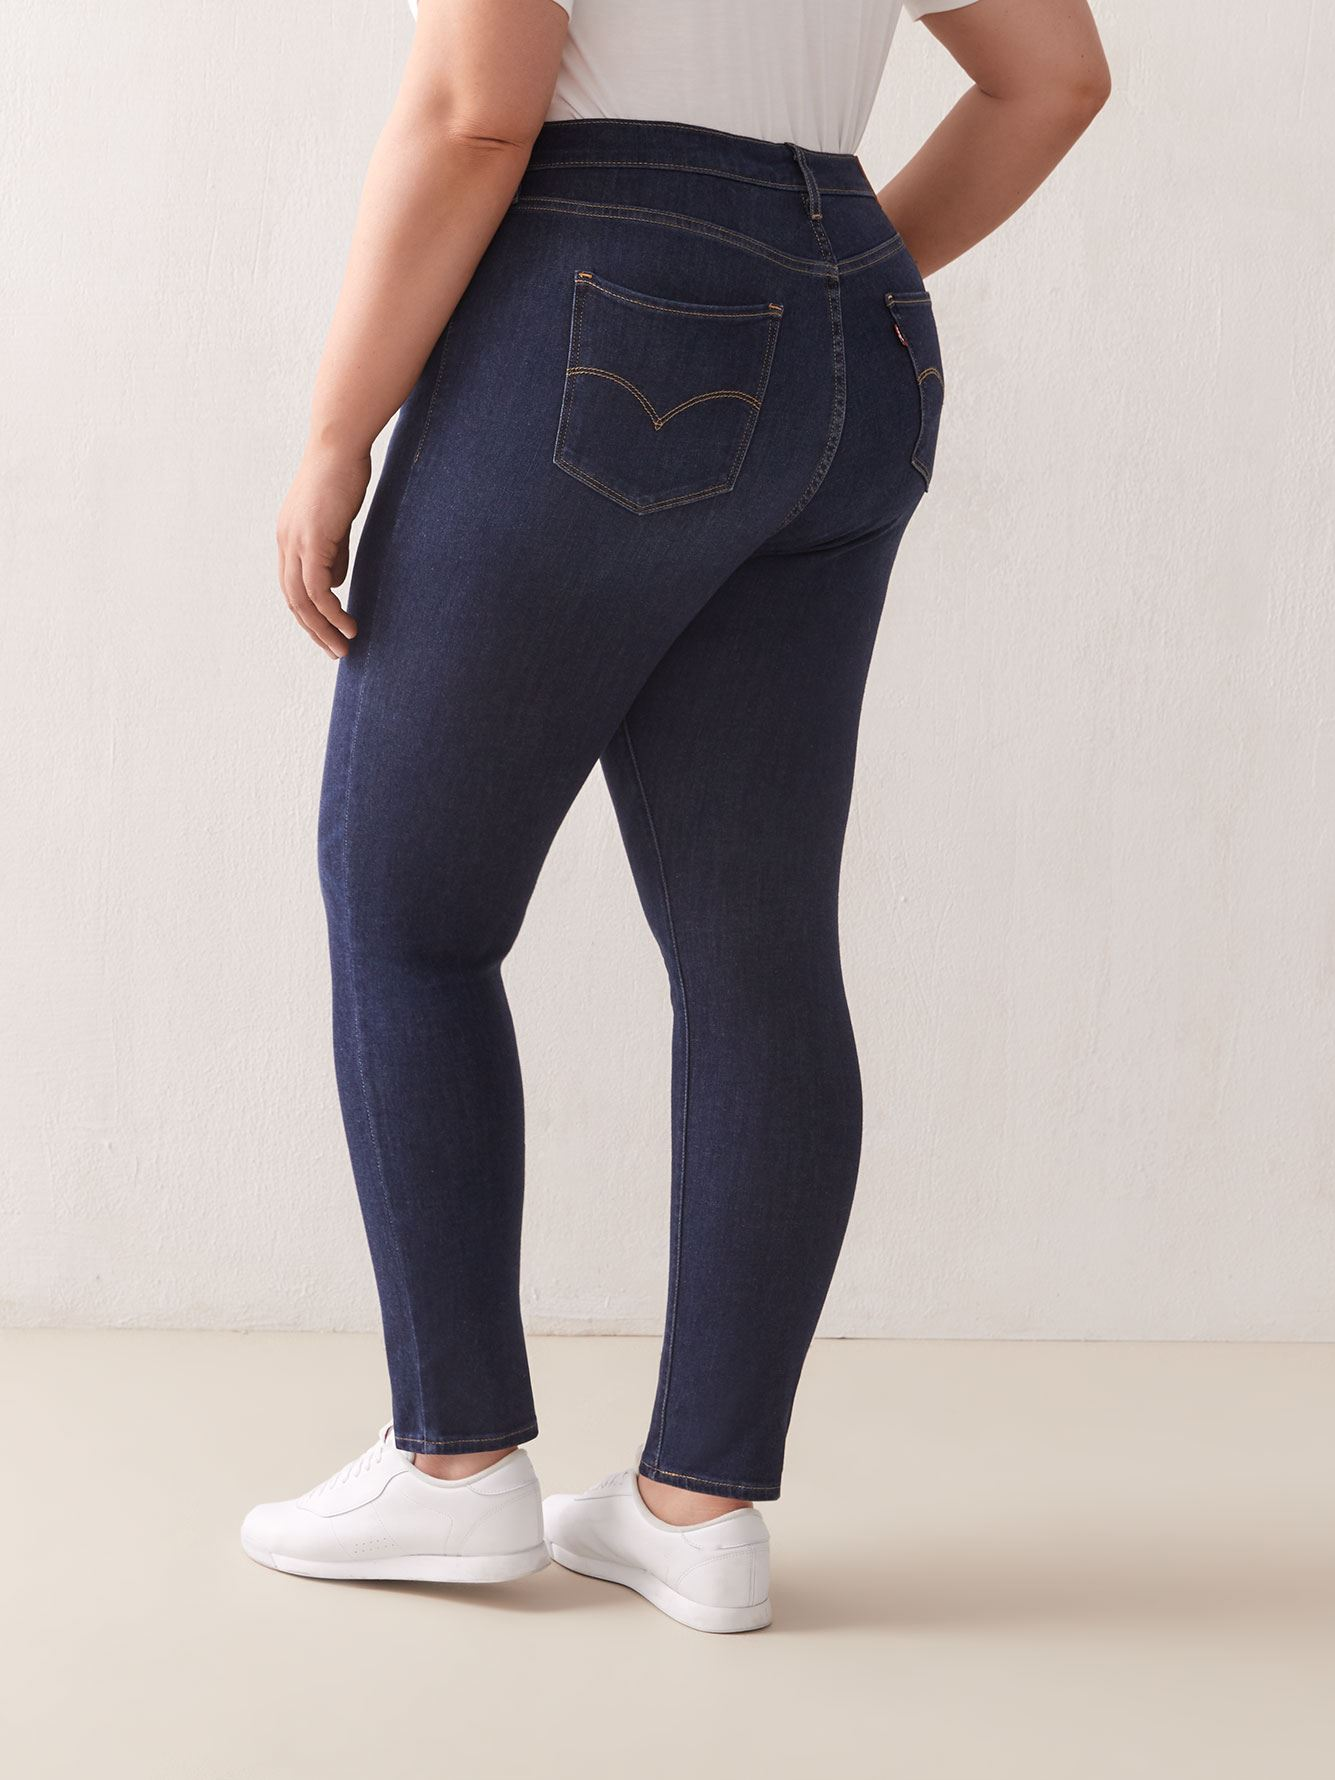 Stretchy High-Rise 721 Skinny Ankle Length Jean - Levi's Premium